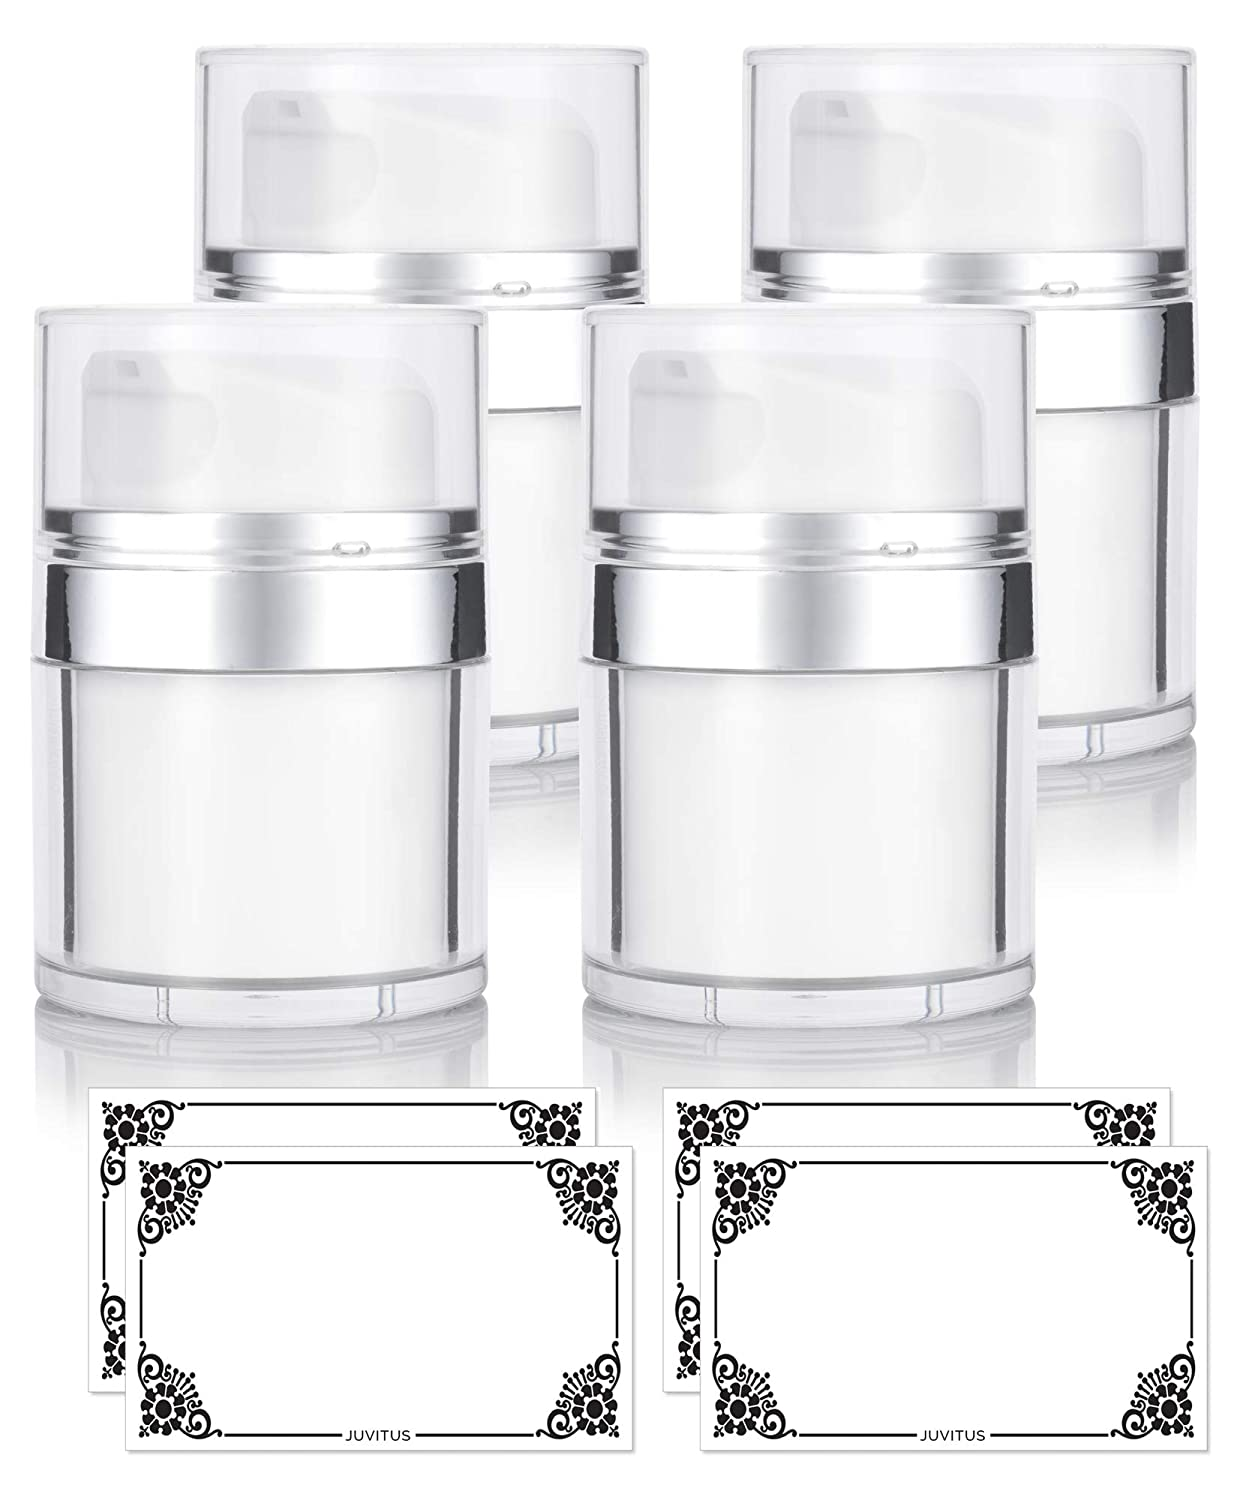 NEW Airless Pump Refillable Jar 1 oz / 30 ml (4 pack) keeps out bacteria and air changing oxidation from your skin care products - durable, leak proof, and shatterproof for home or travel